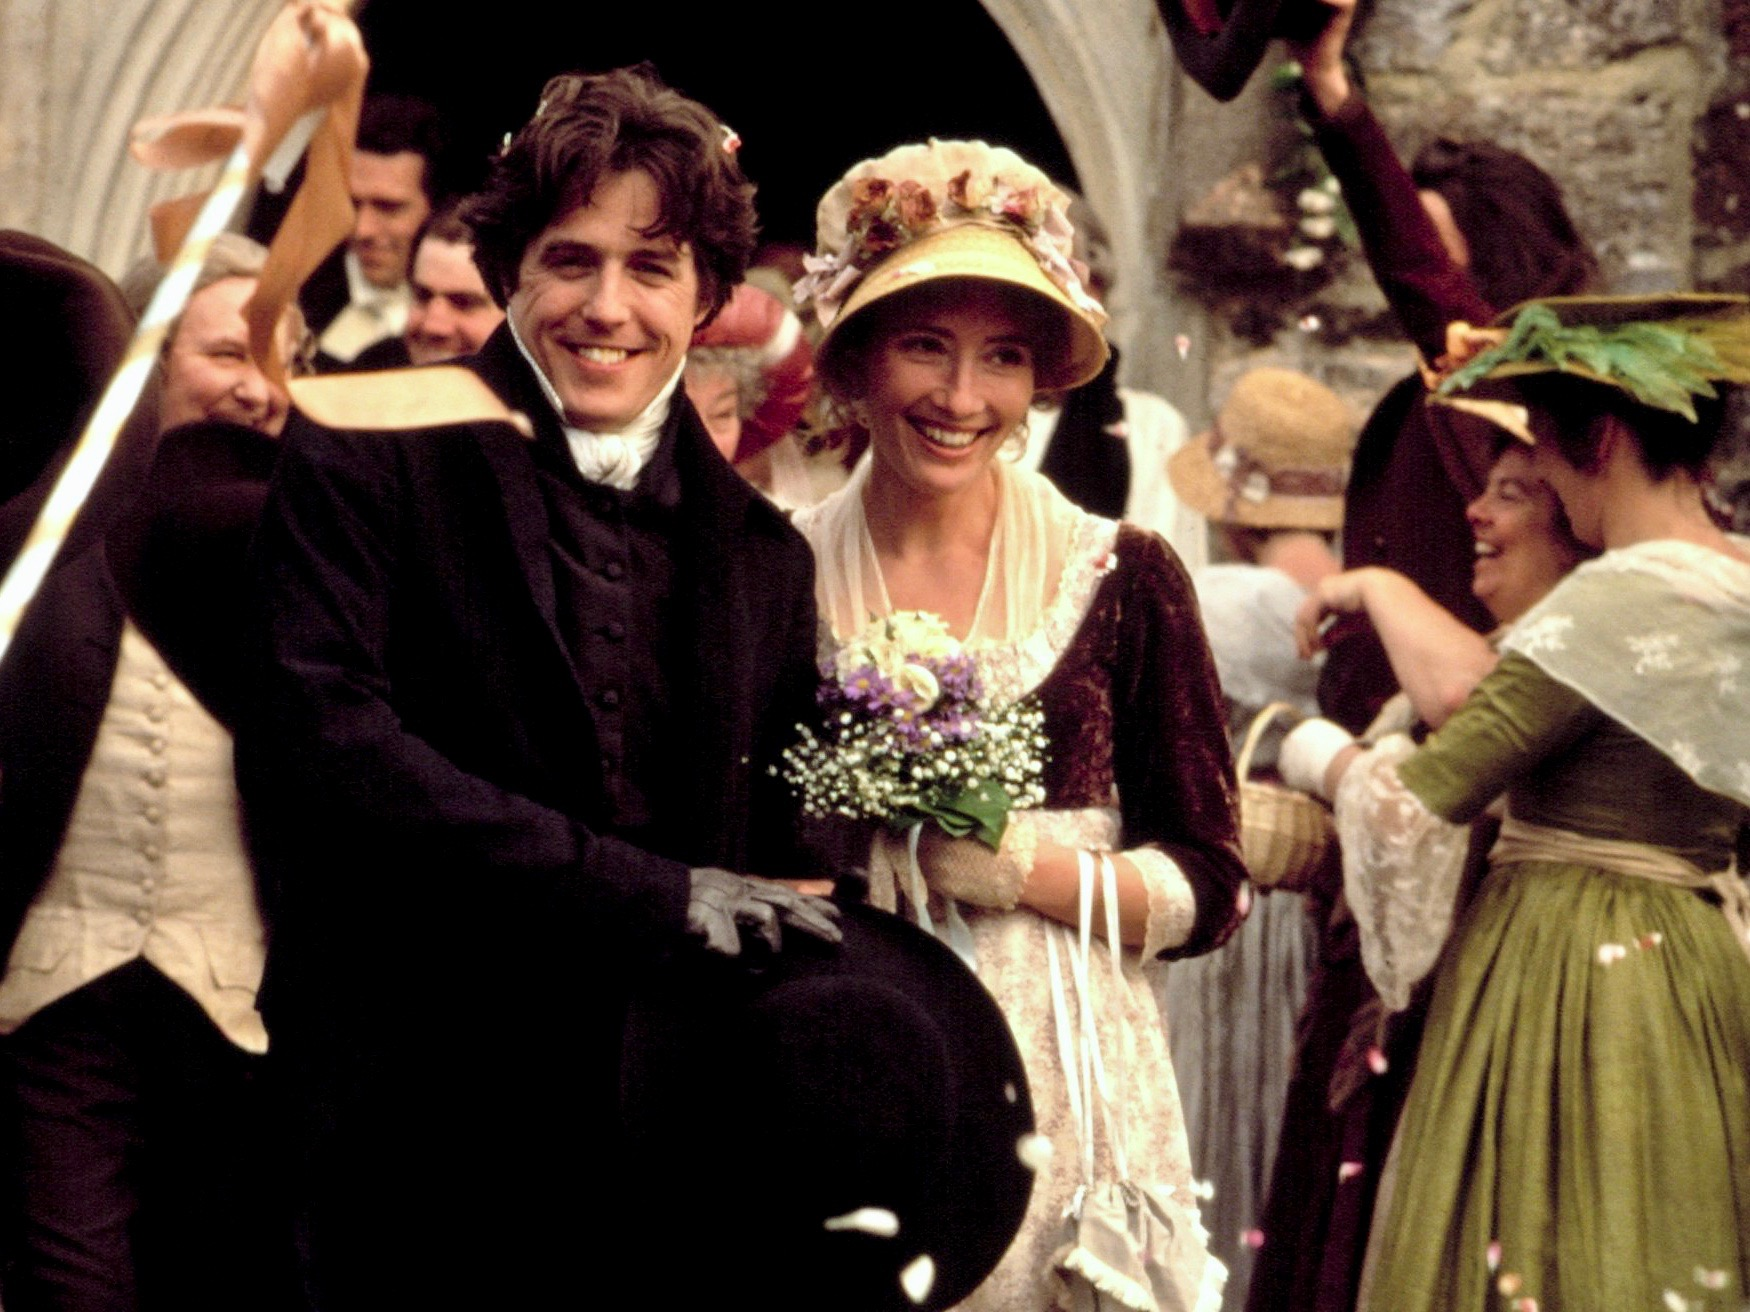 Sense and Sensibility   (1995); image courtesy of Columbia Pictures from MovieStillsDB.com